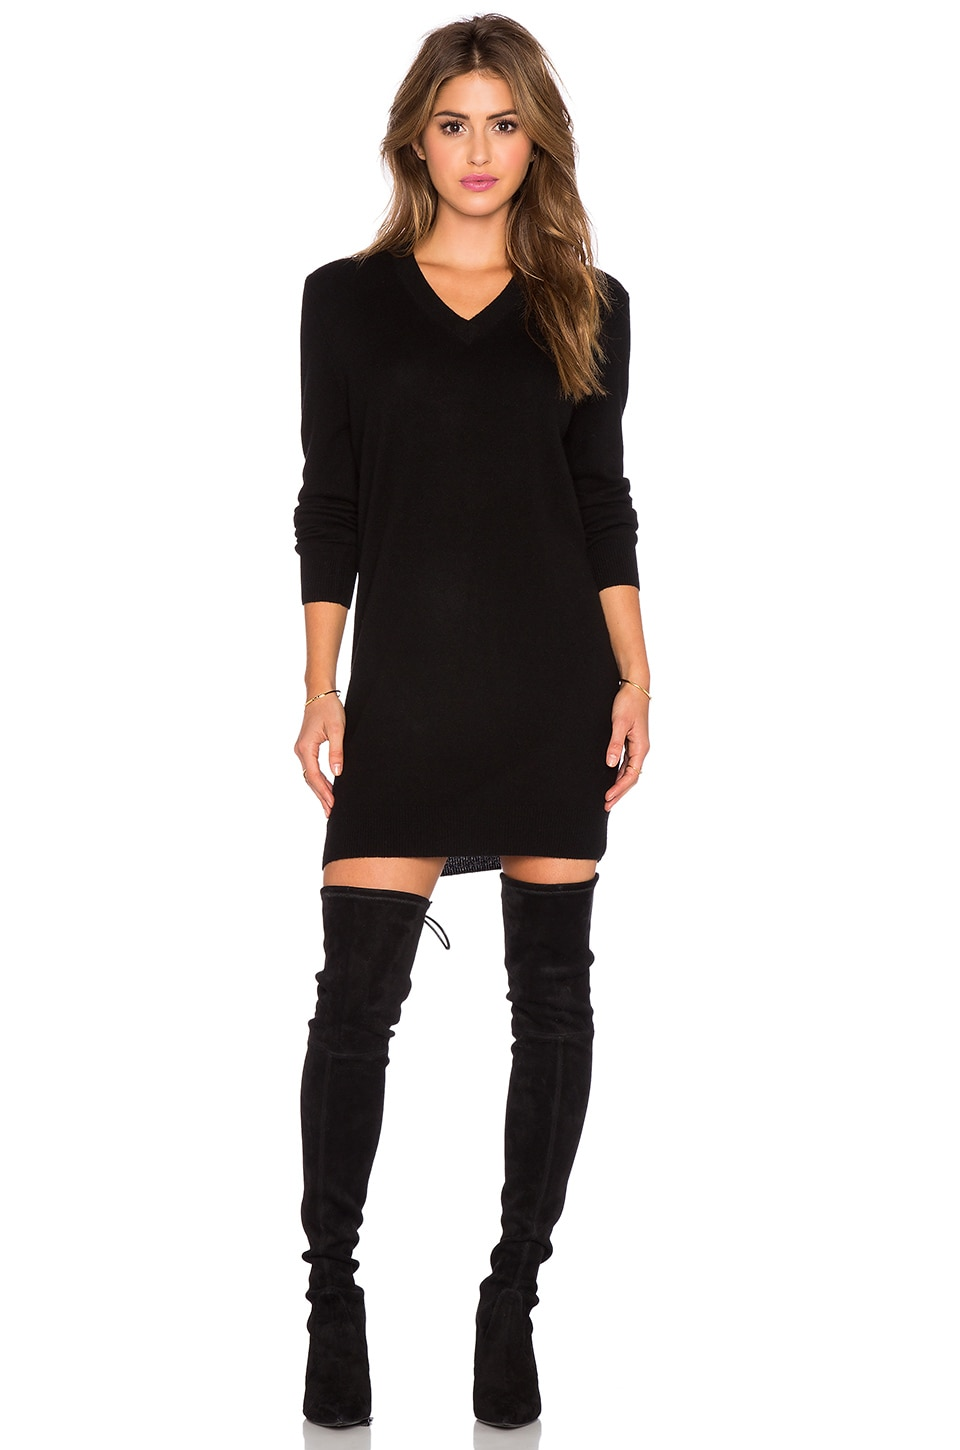 Equipment Eunice Cashmere Sweater Dress in Black